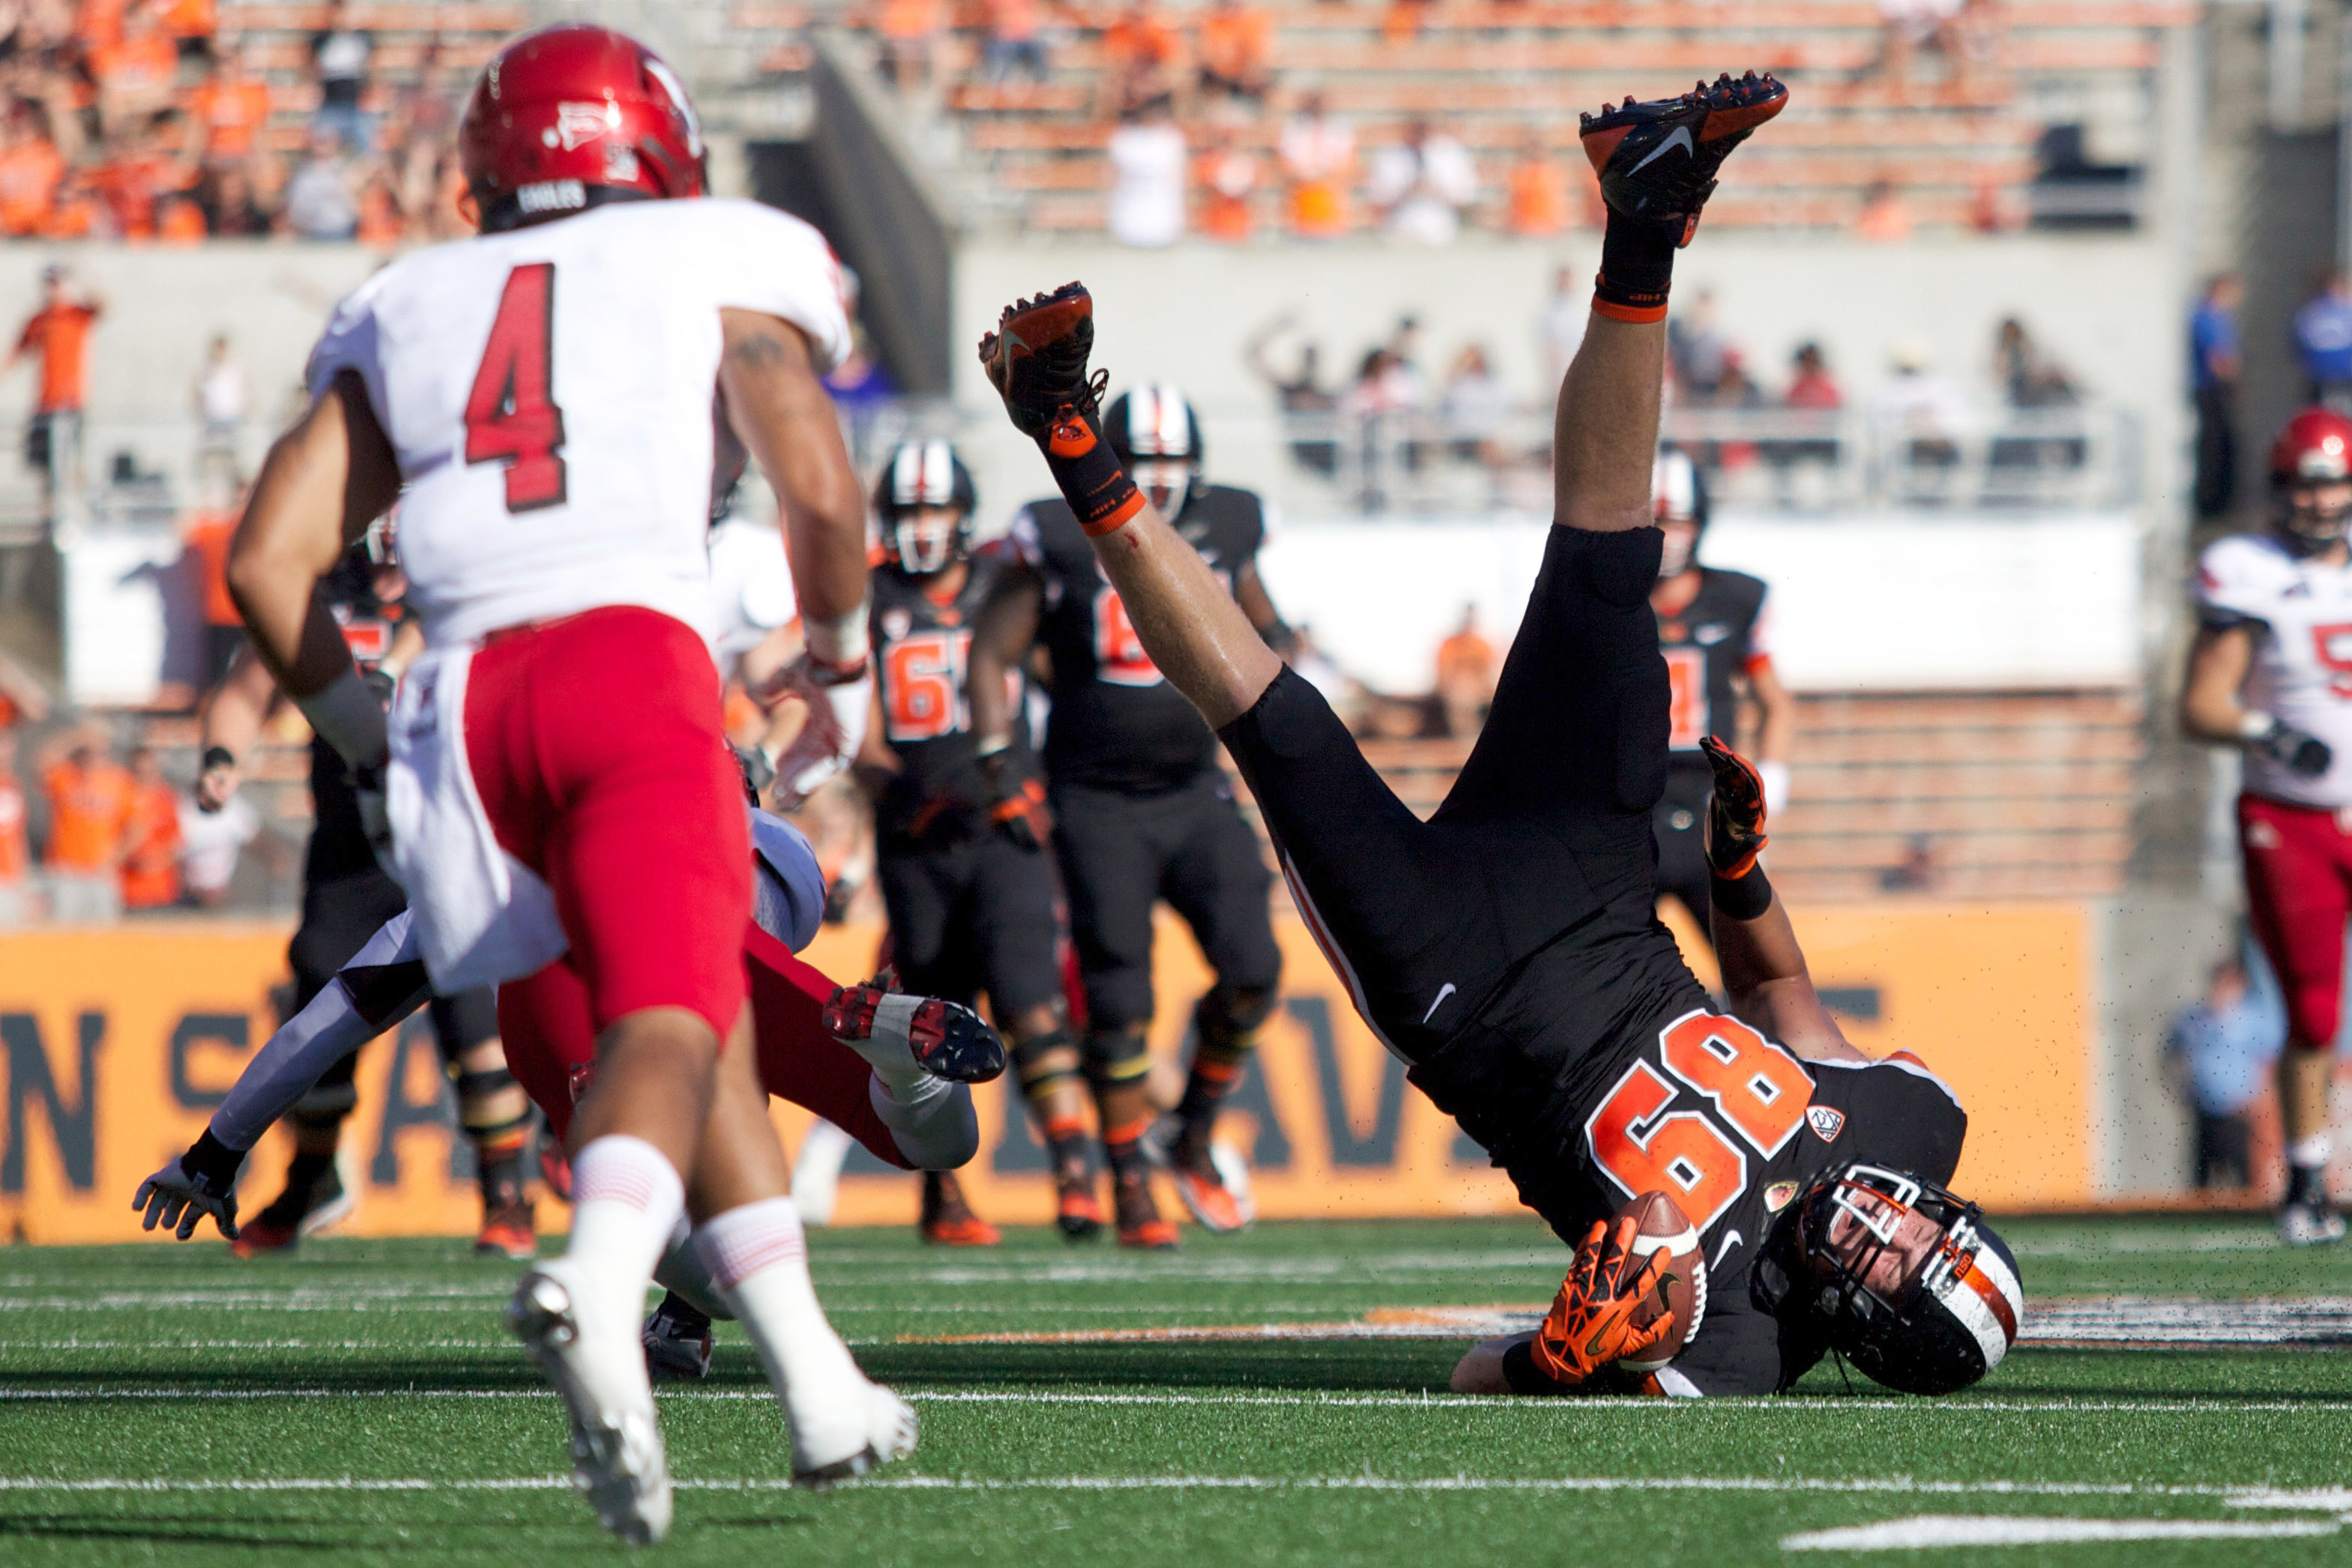 Oregon State Beavers tight end Connor Hamlett falls head first after being tripped up against Eastern Washington. Oregon State was upset, 49-46, by Eastern Washington. (Jaime Valdez/USA TODAY Sports)